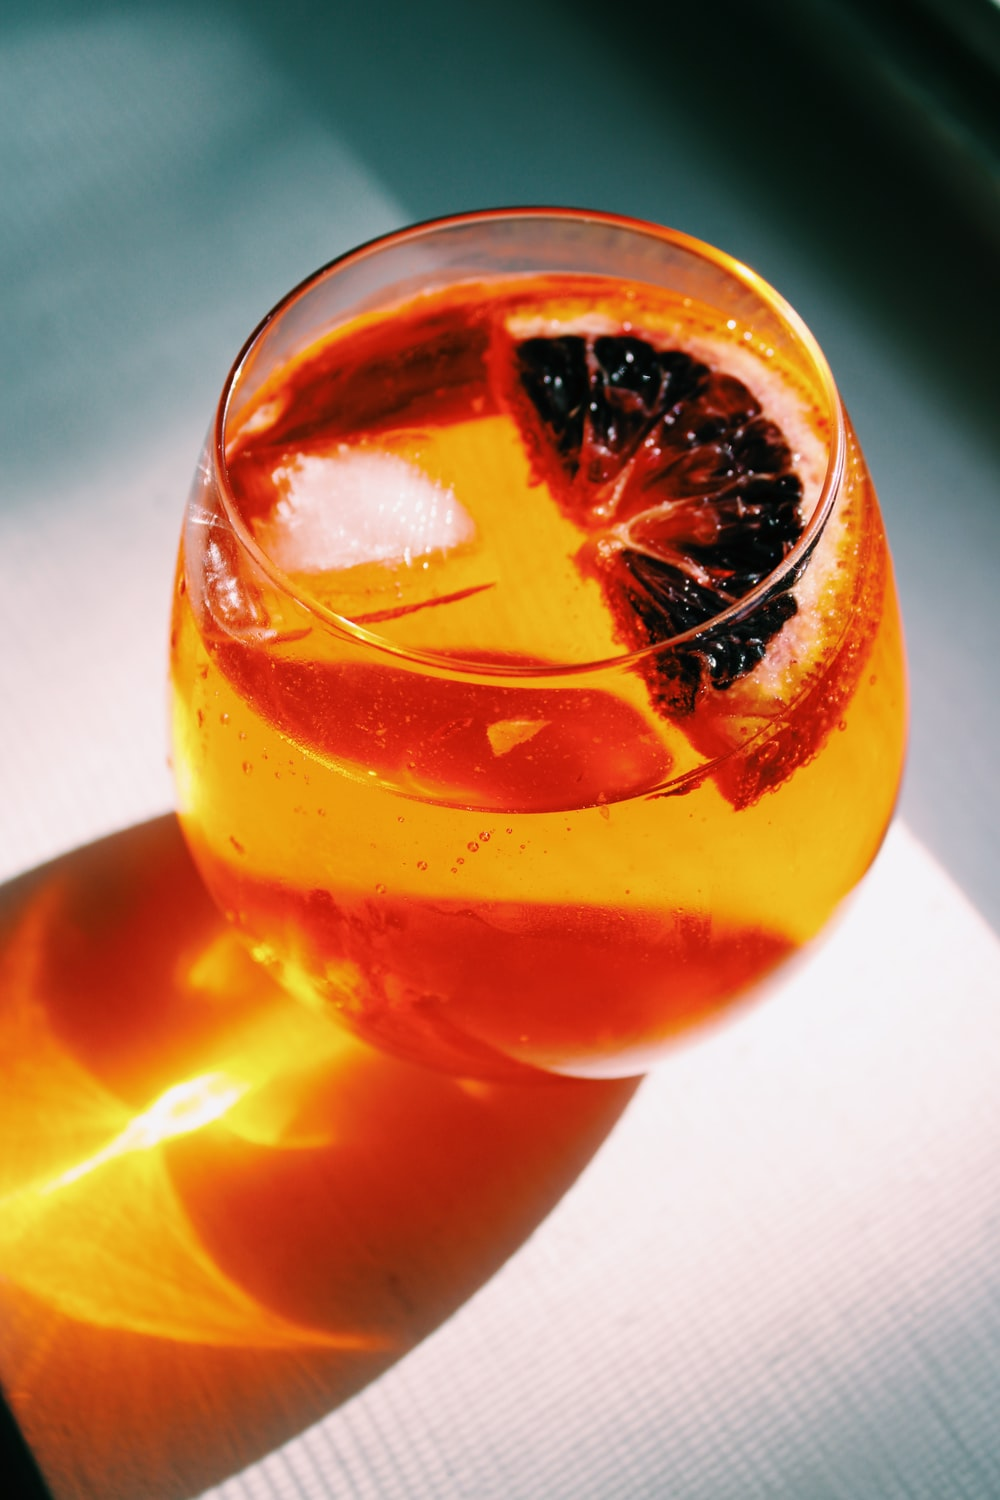 clear drinking glass with orange liquid